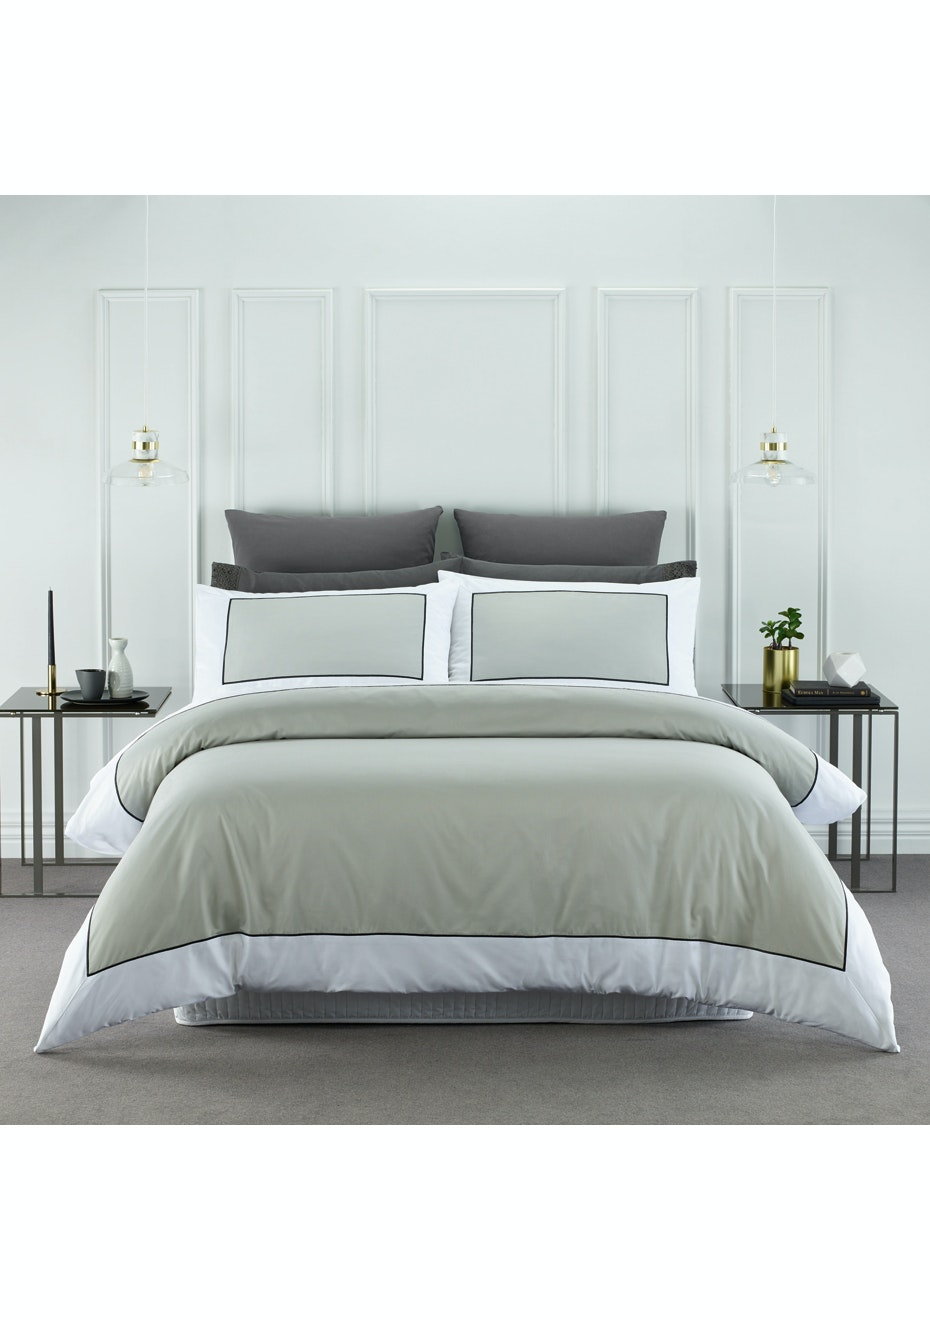 Style & Co 1000 Thread count Egyptian Cotton Hotel Collection Ascot Quilt Cover sets Queen Silver